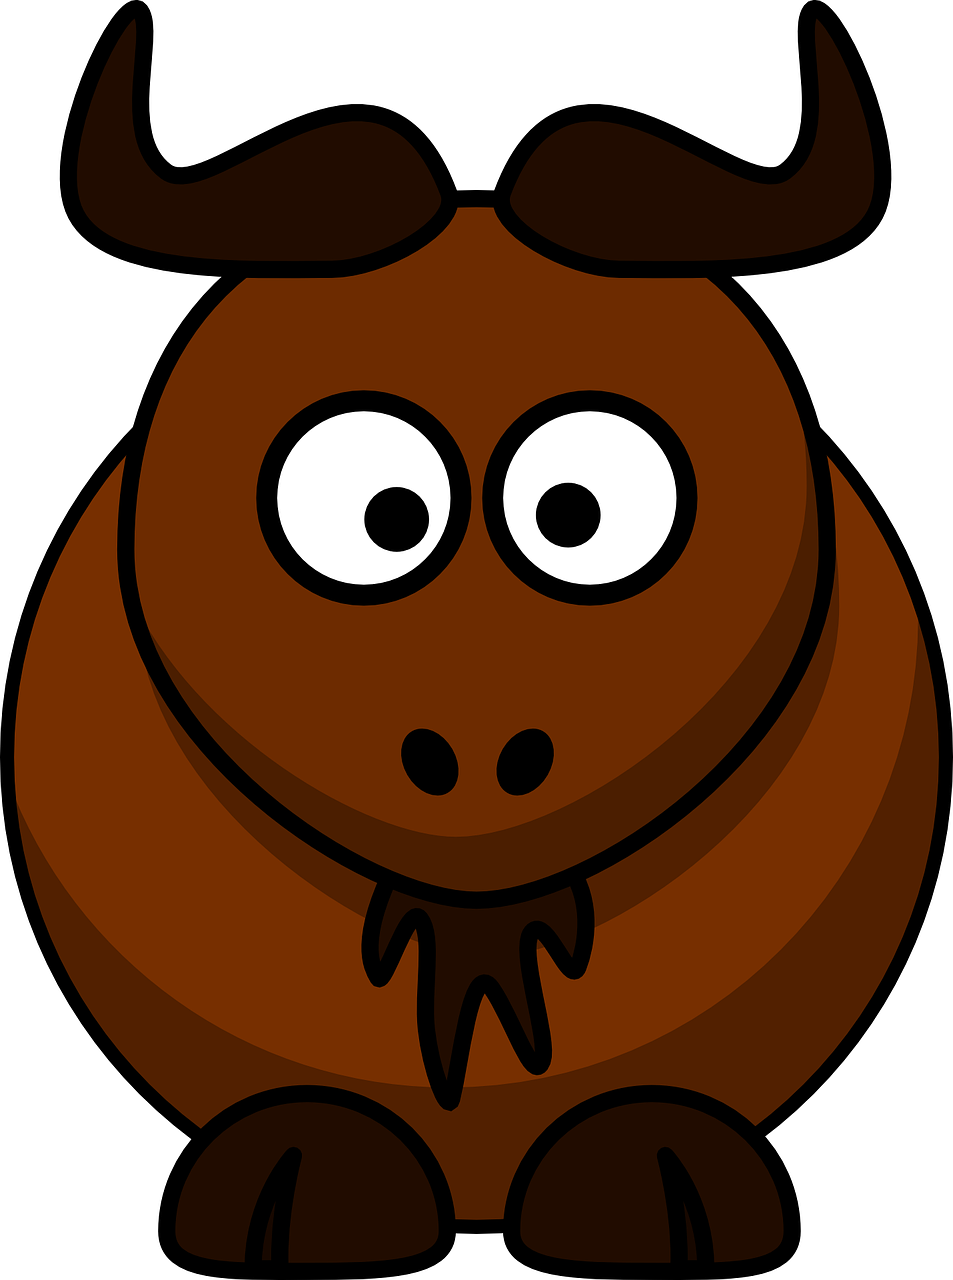 Elk clipart angry. Free image on pixabay